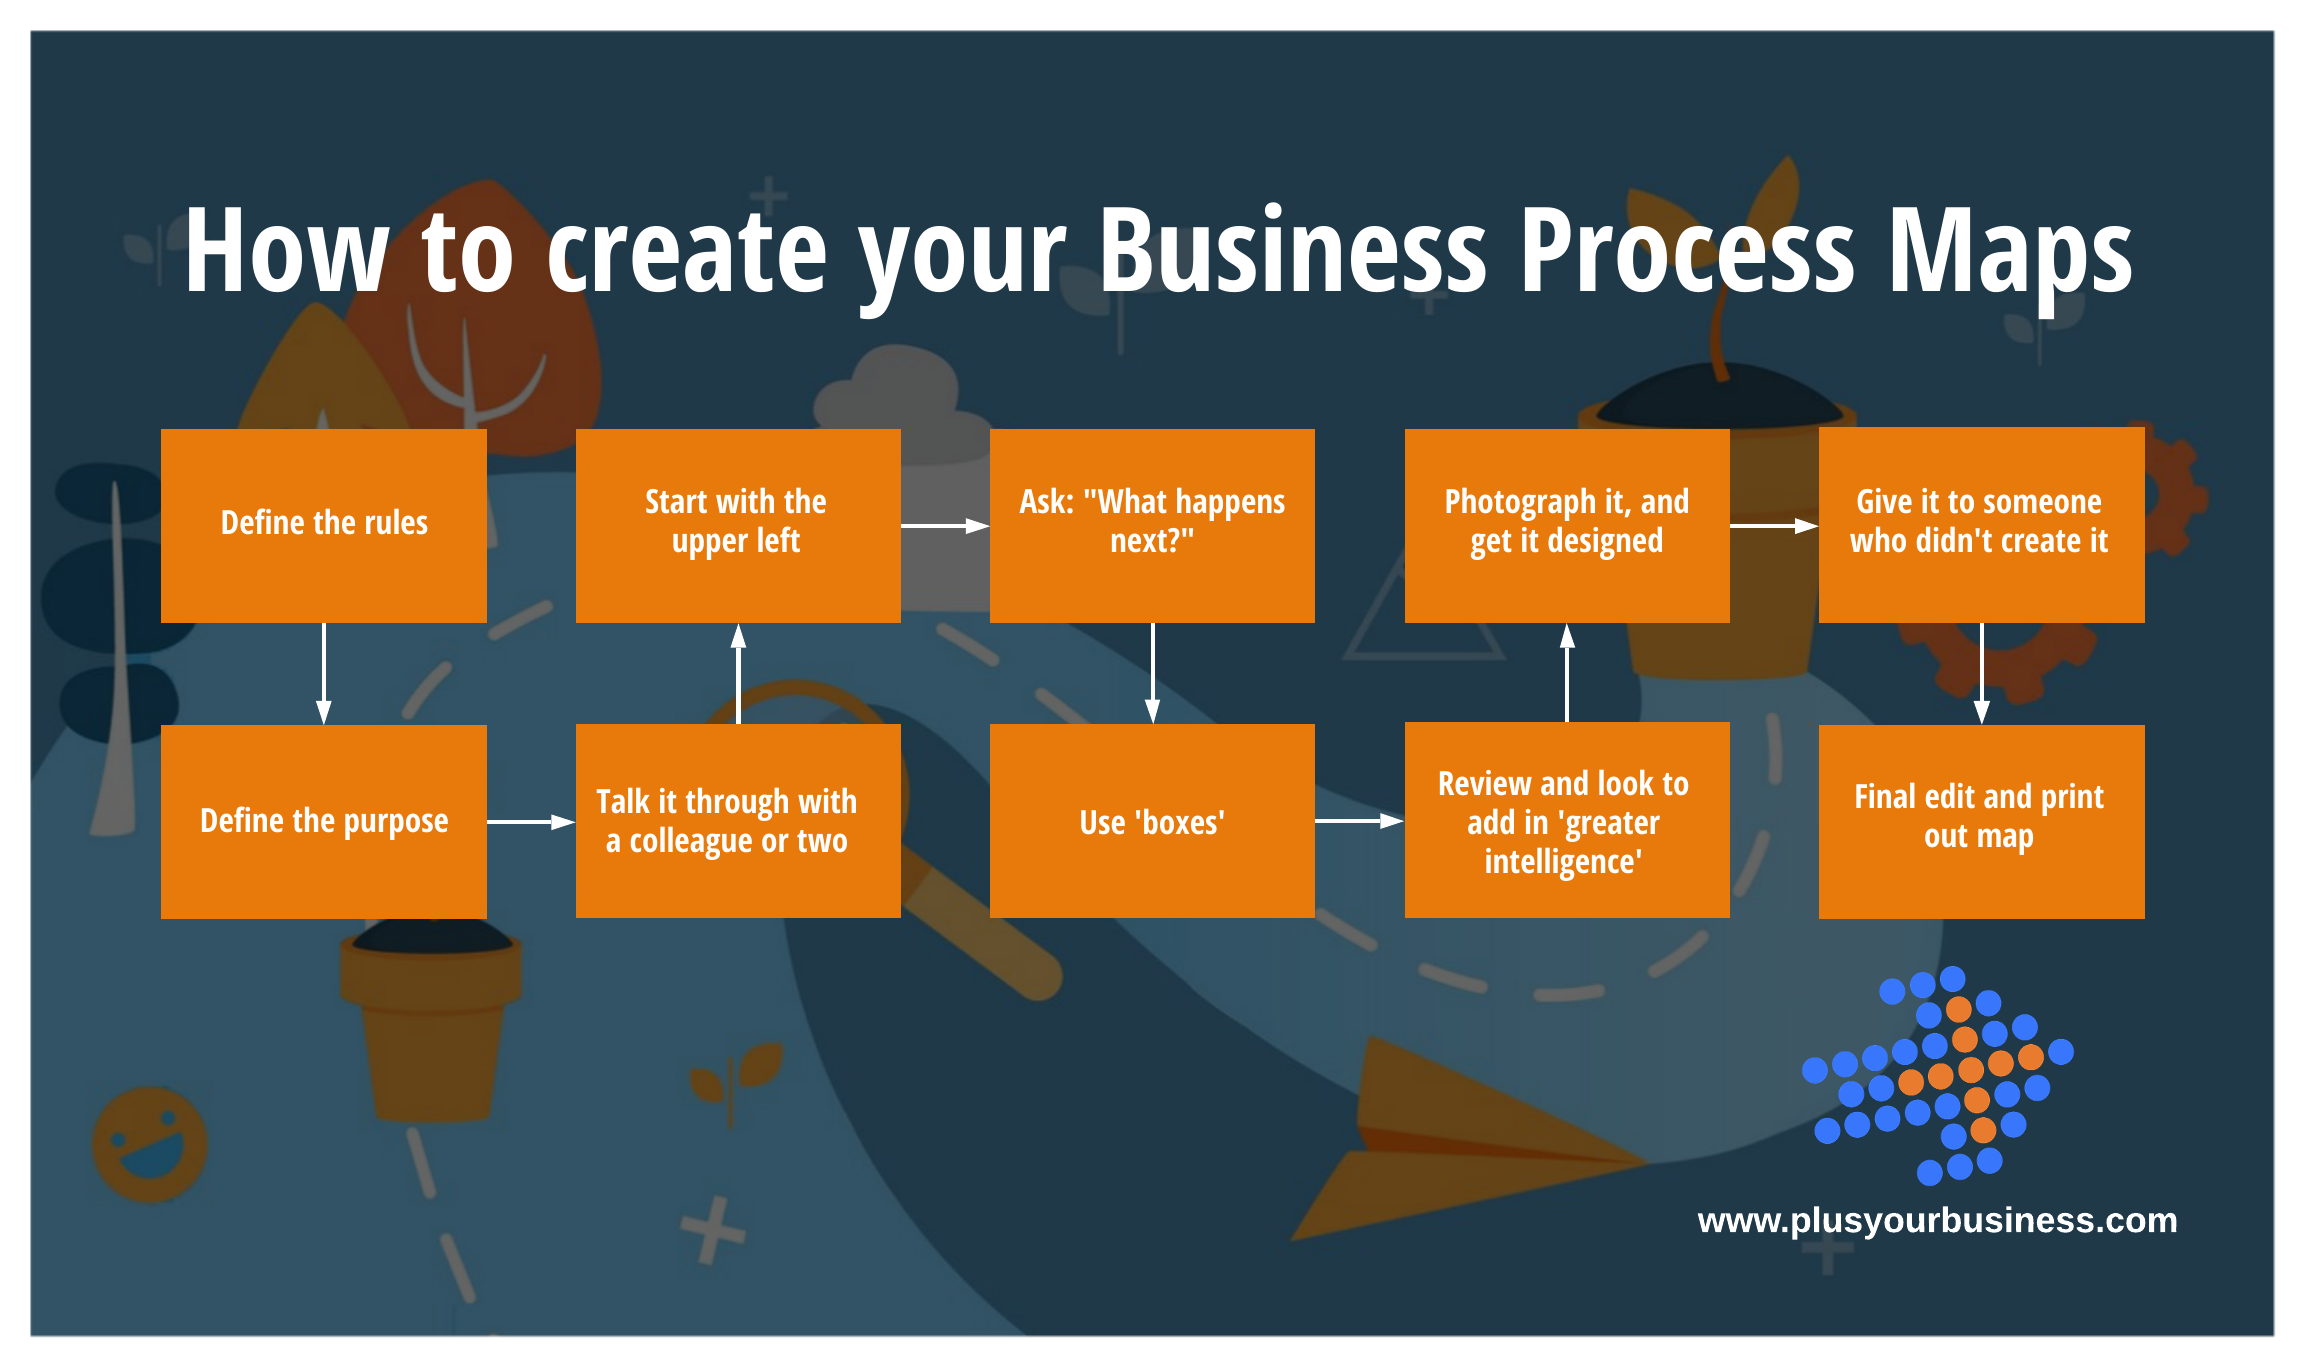 How to create your Business Process Maps (1)